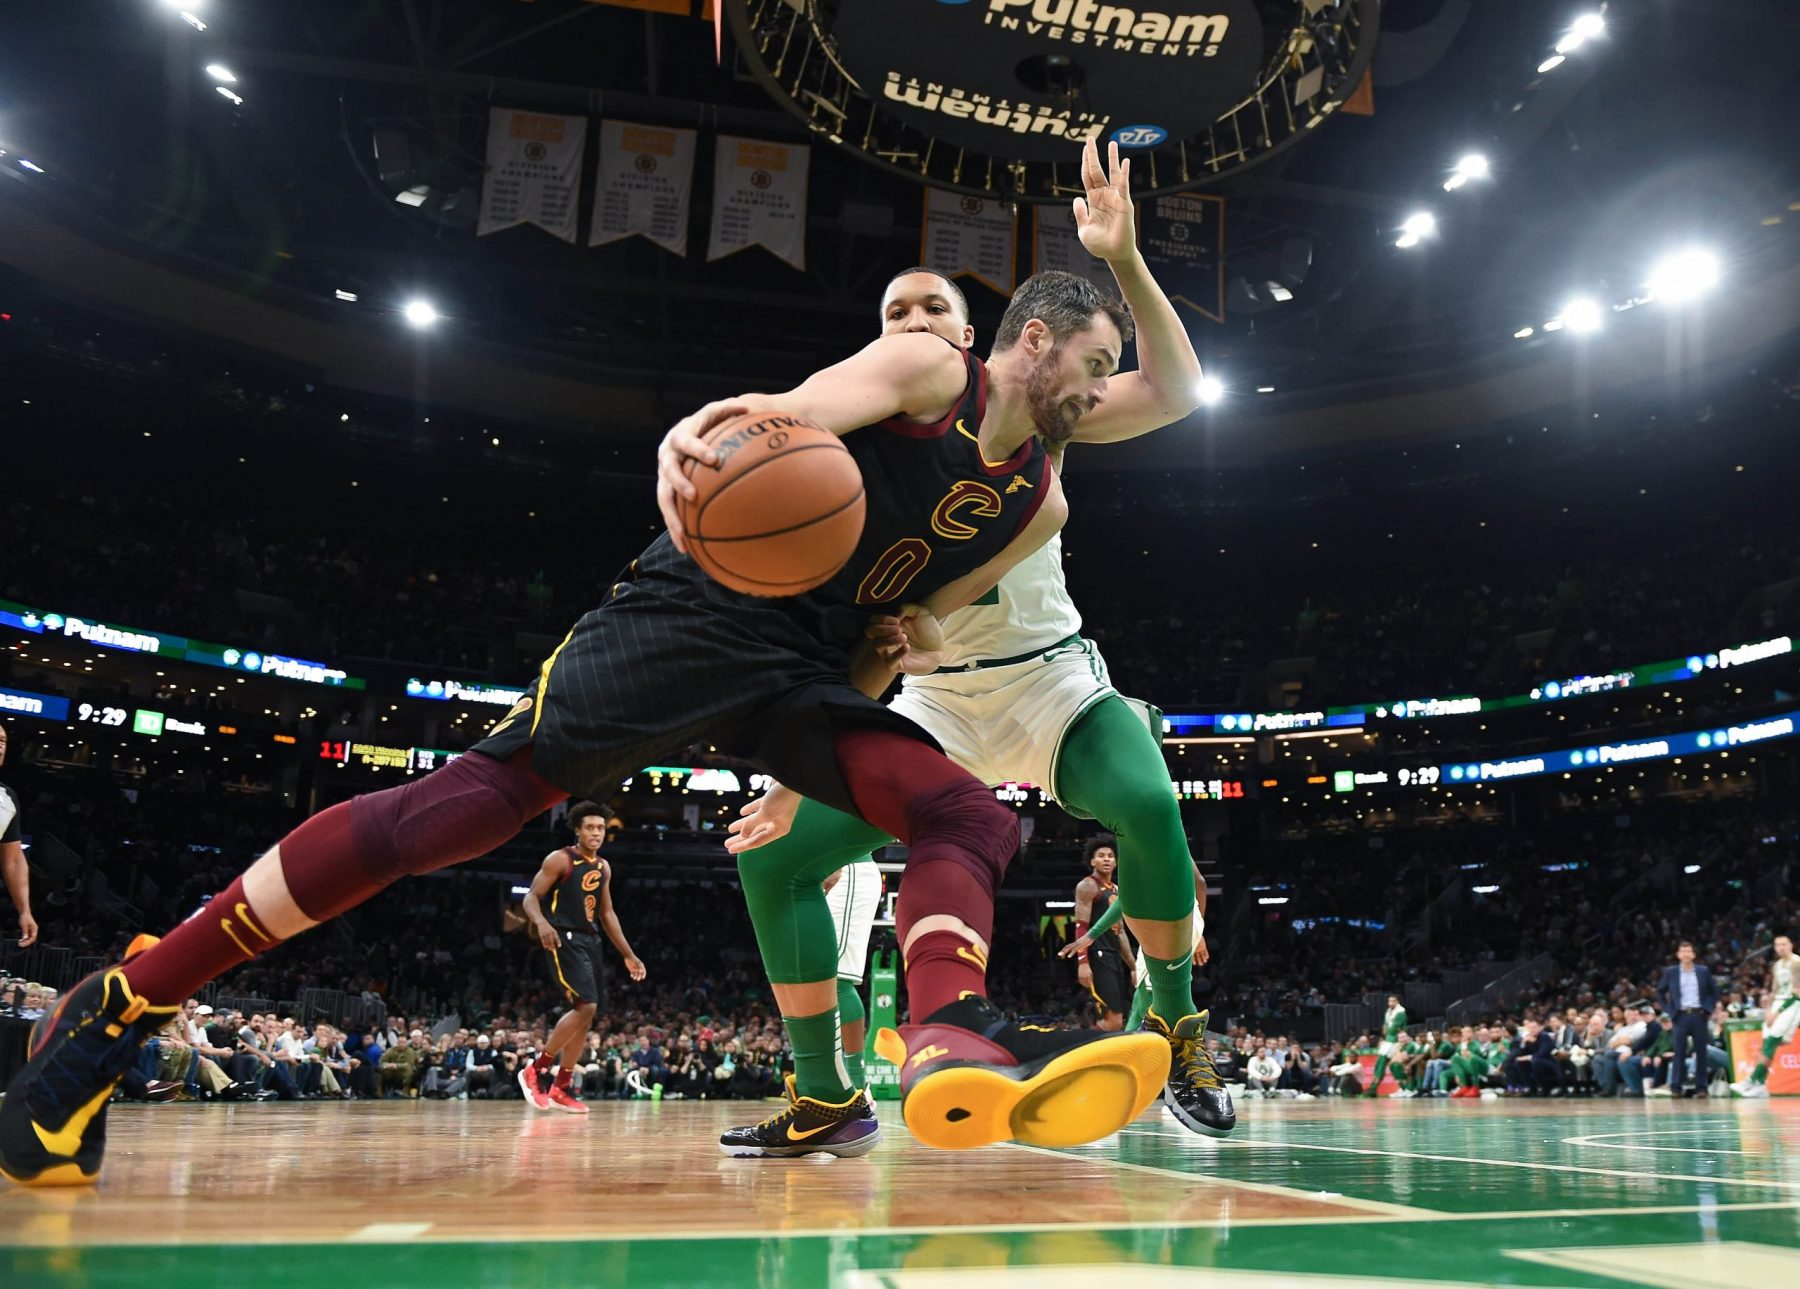 Cavs Rumors: Kevin Love 'Prefers' Trade to Portland Trail Blazers